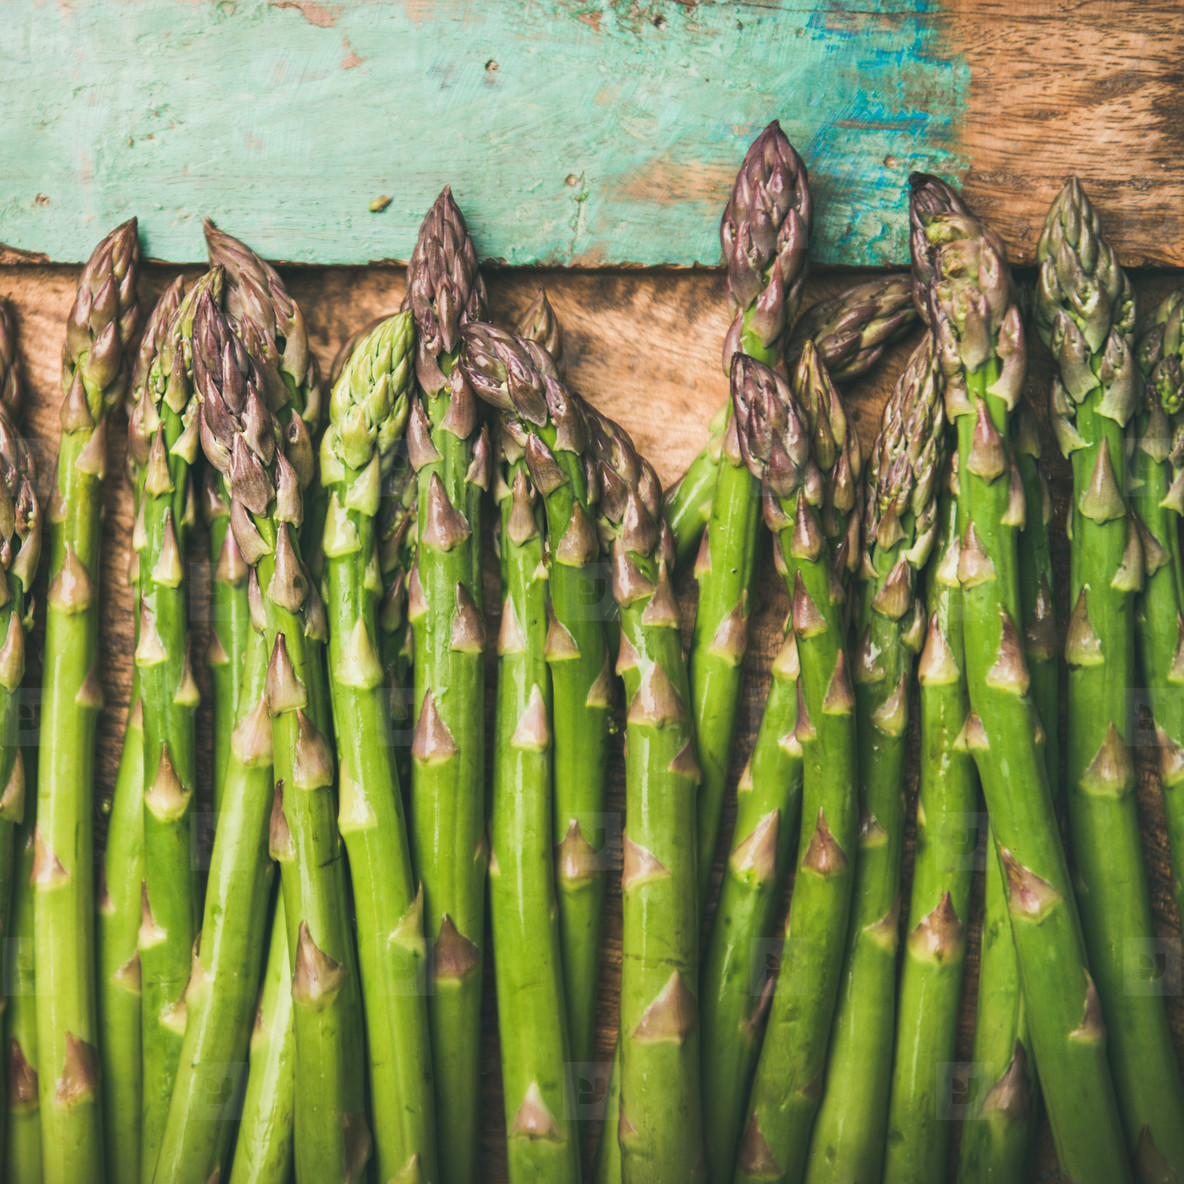 Raw uncooked green asparagus over rustic wooden tray background  square crop